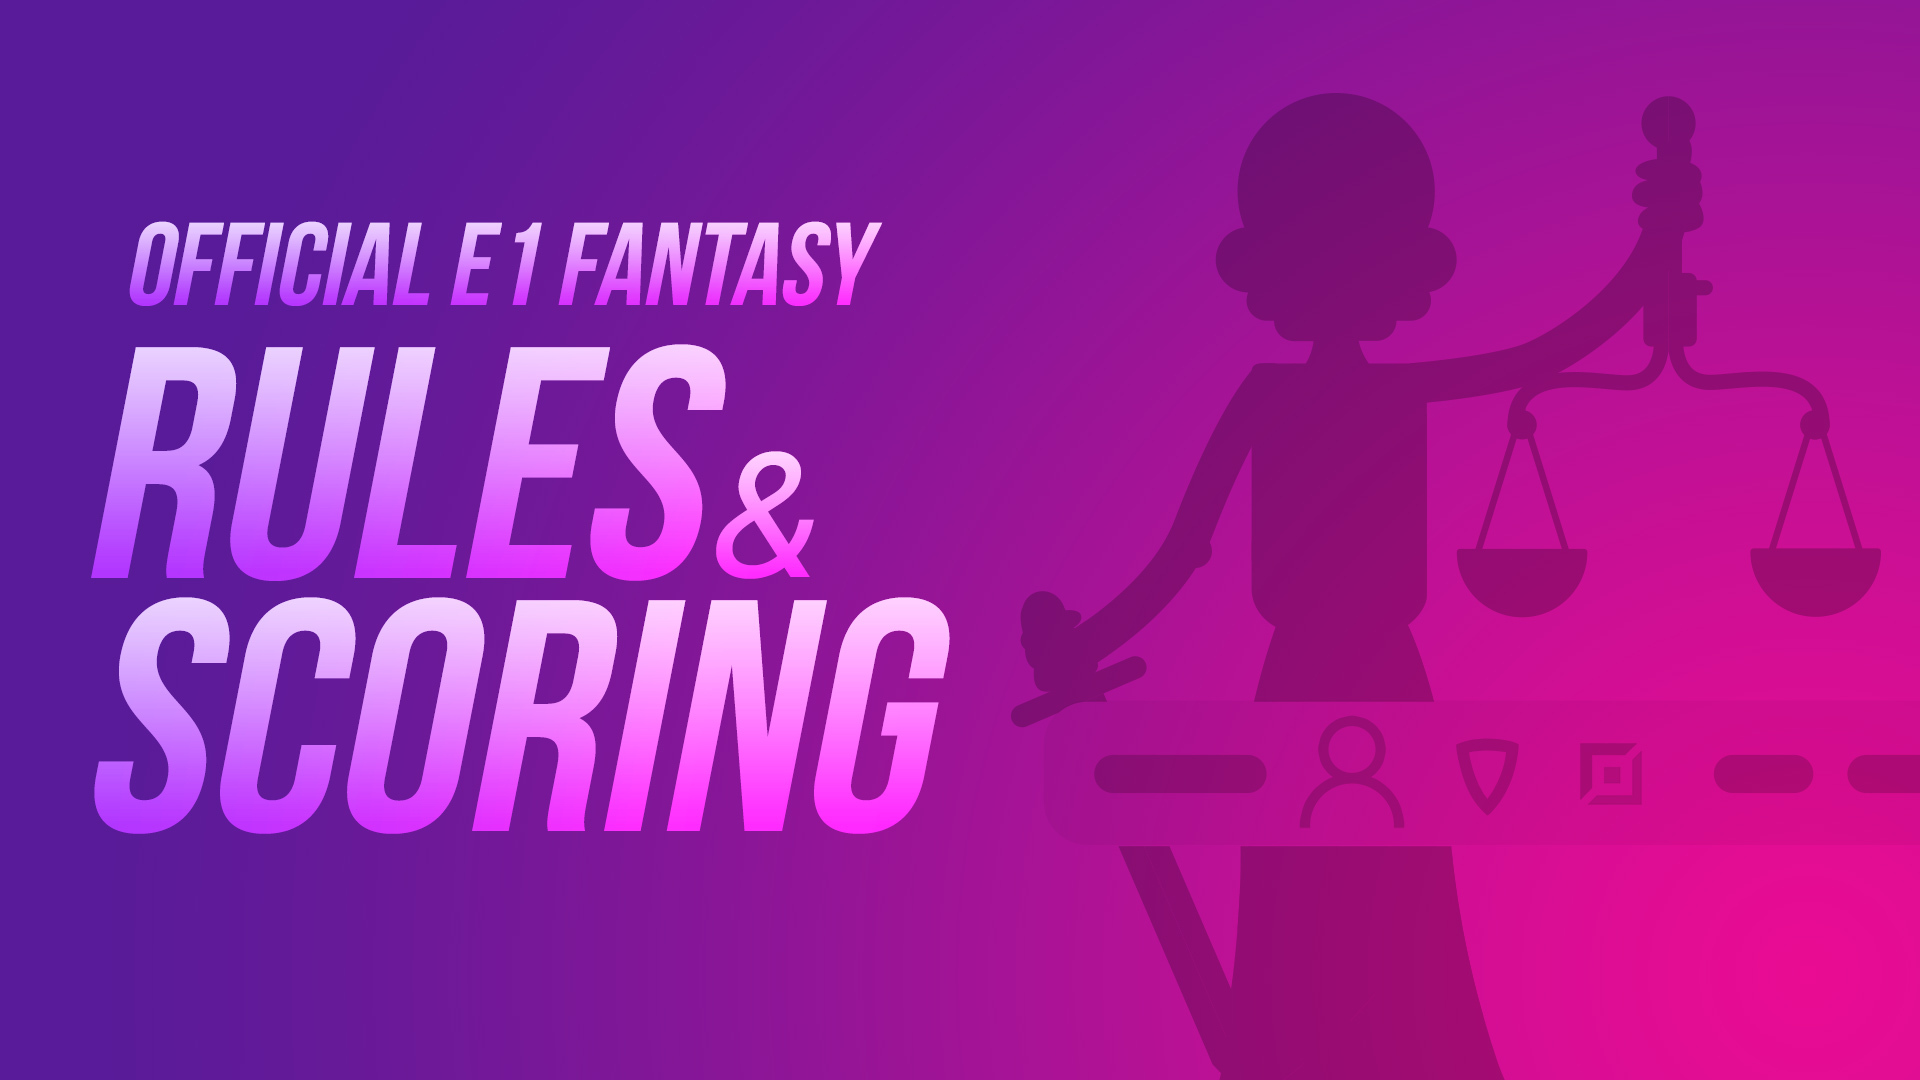 Official Fantasy Rules and Scoring